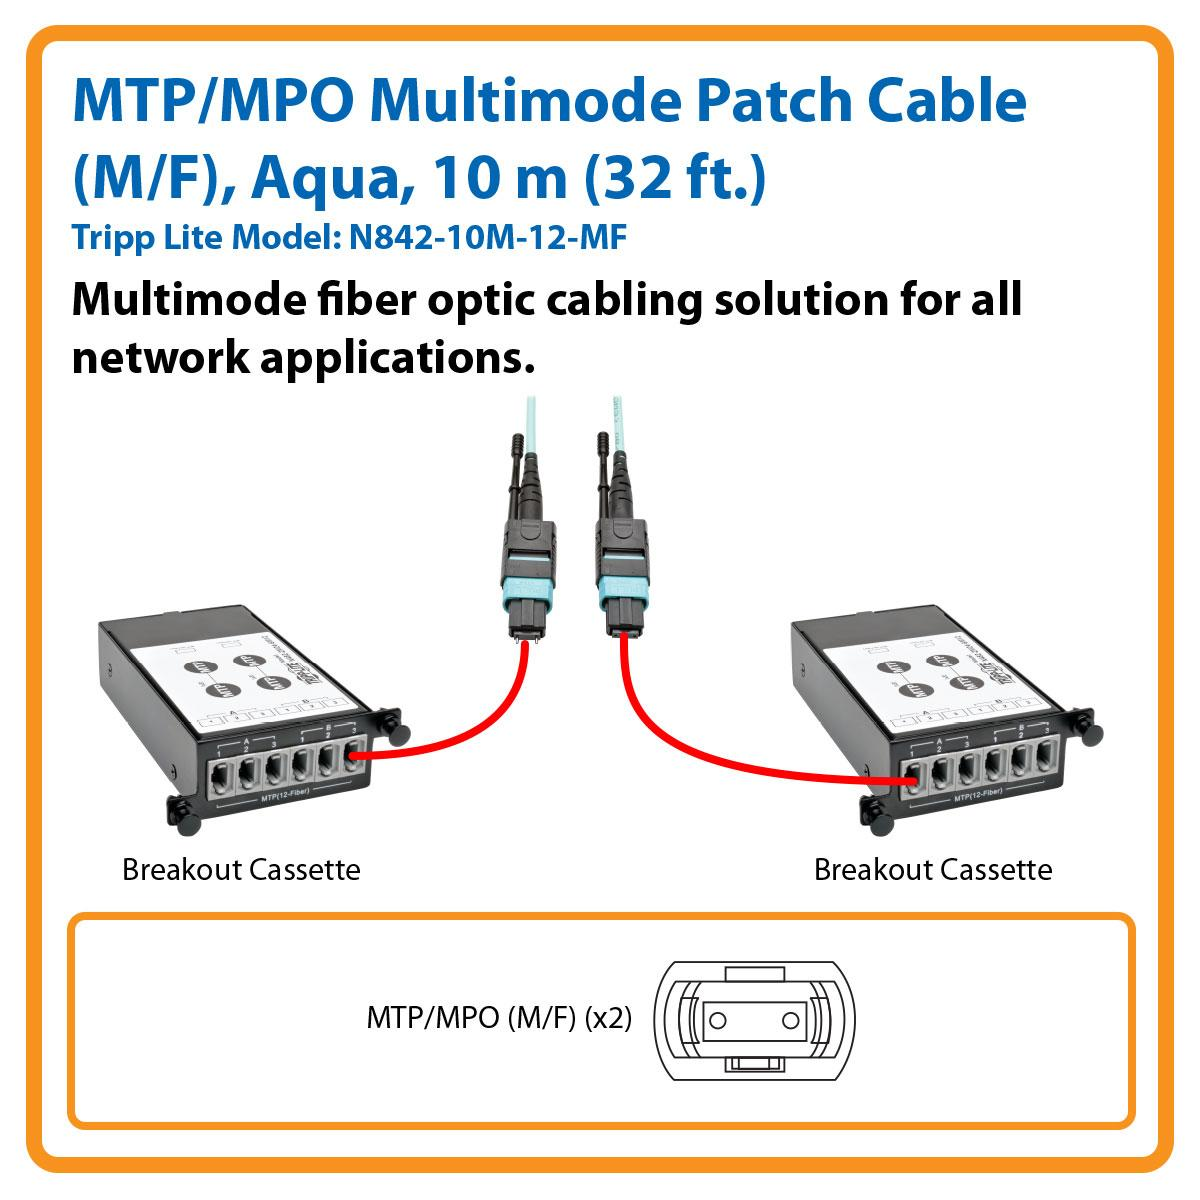 Tripp Lite 32 Mtp Mpo Multimode Patch Cable 12 Fiber Diagram 40 Gbe Om3 Plenum Rated M F Aqua 10m Ft